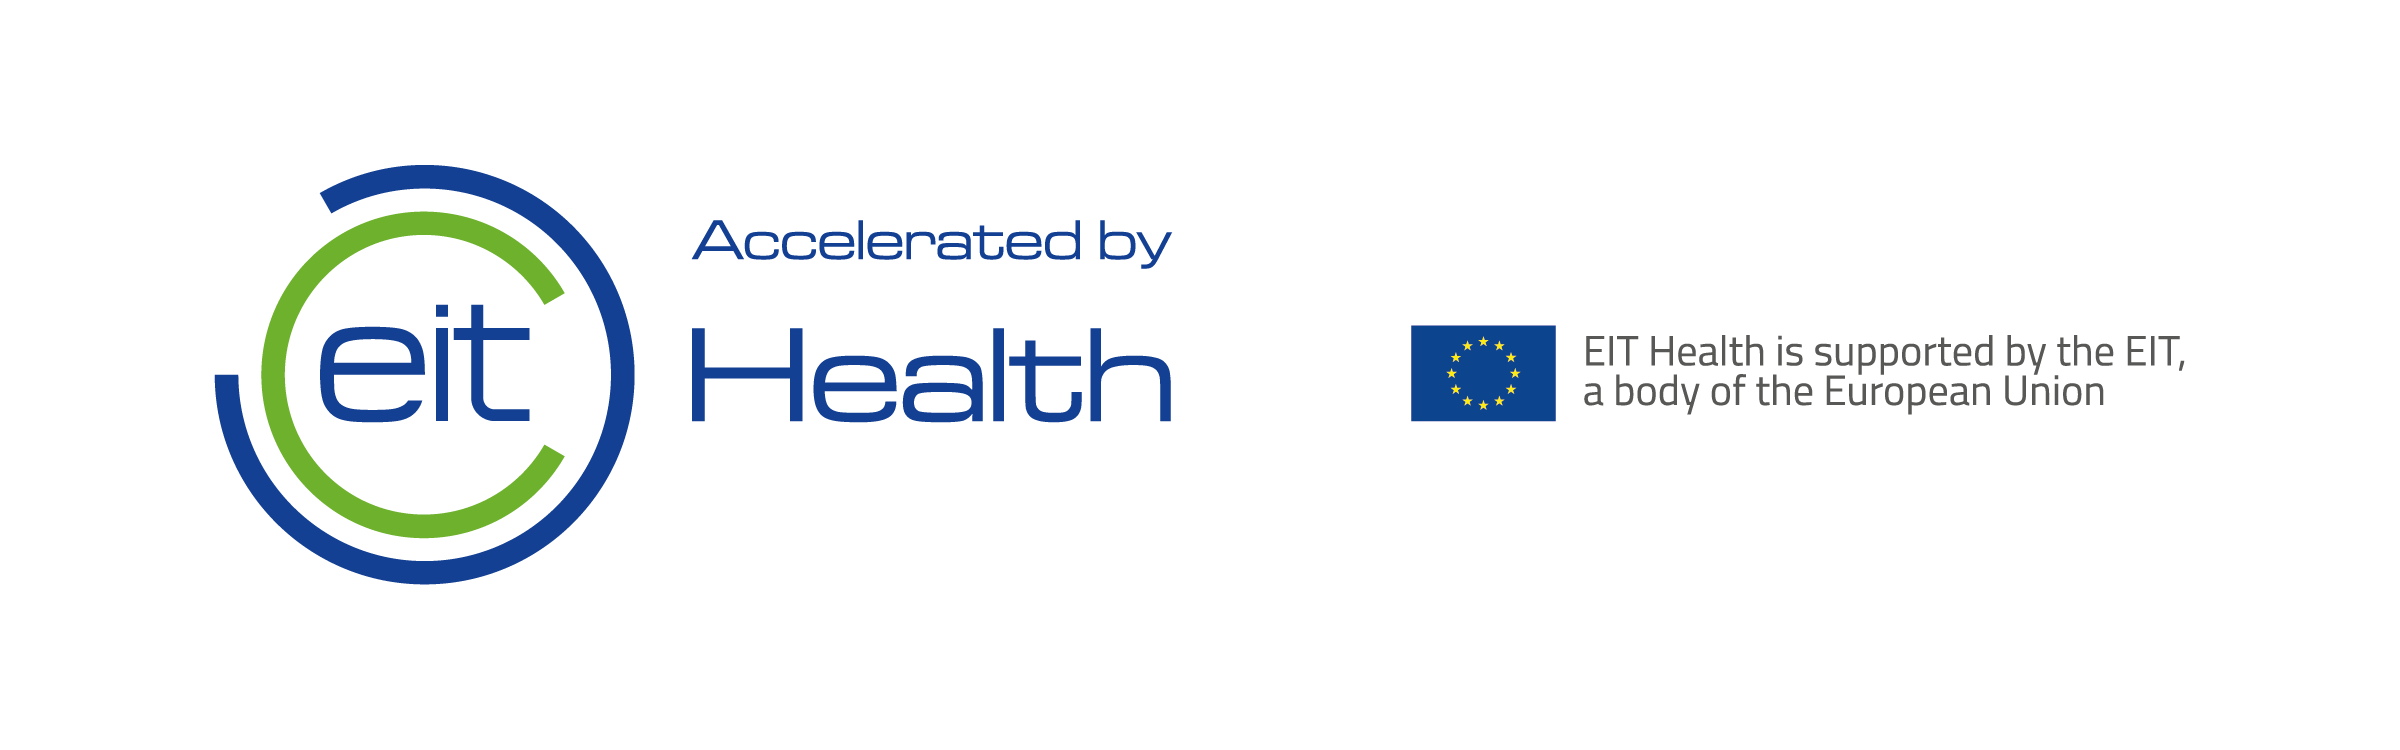 This activity has received funding from the European Institute of Innovation and Technology (EIT). This body of the European Union receives support from the European Union's Horizon 2020 research and innovation programme.